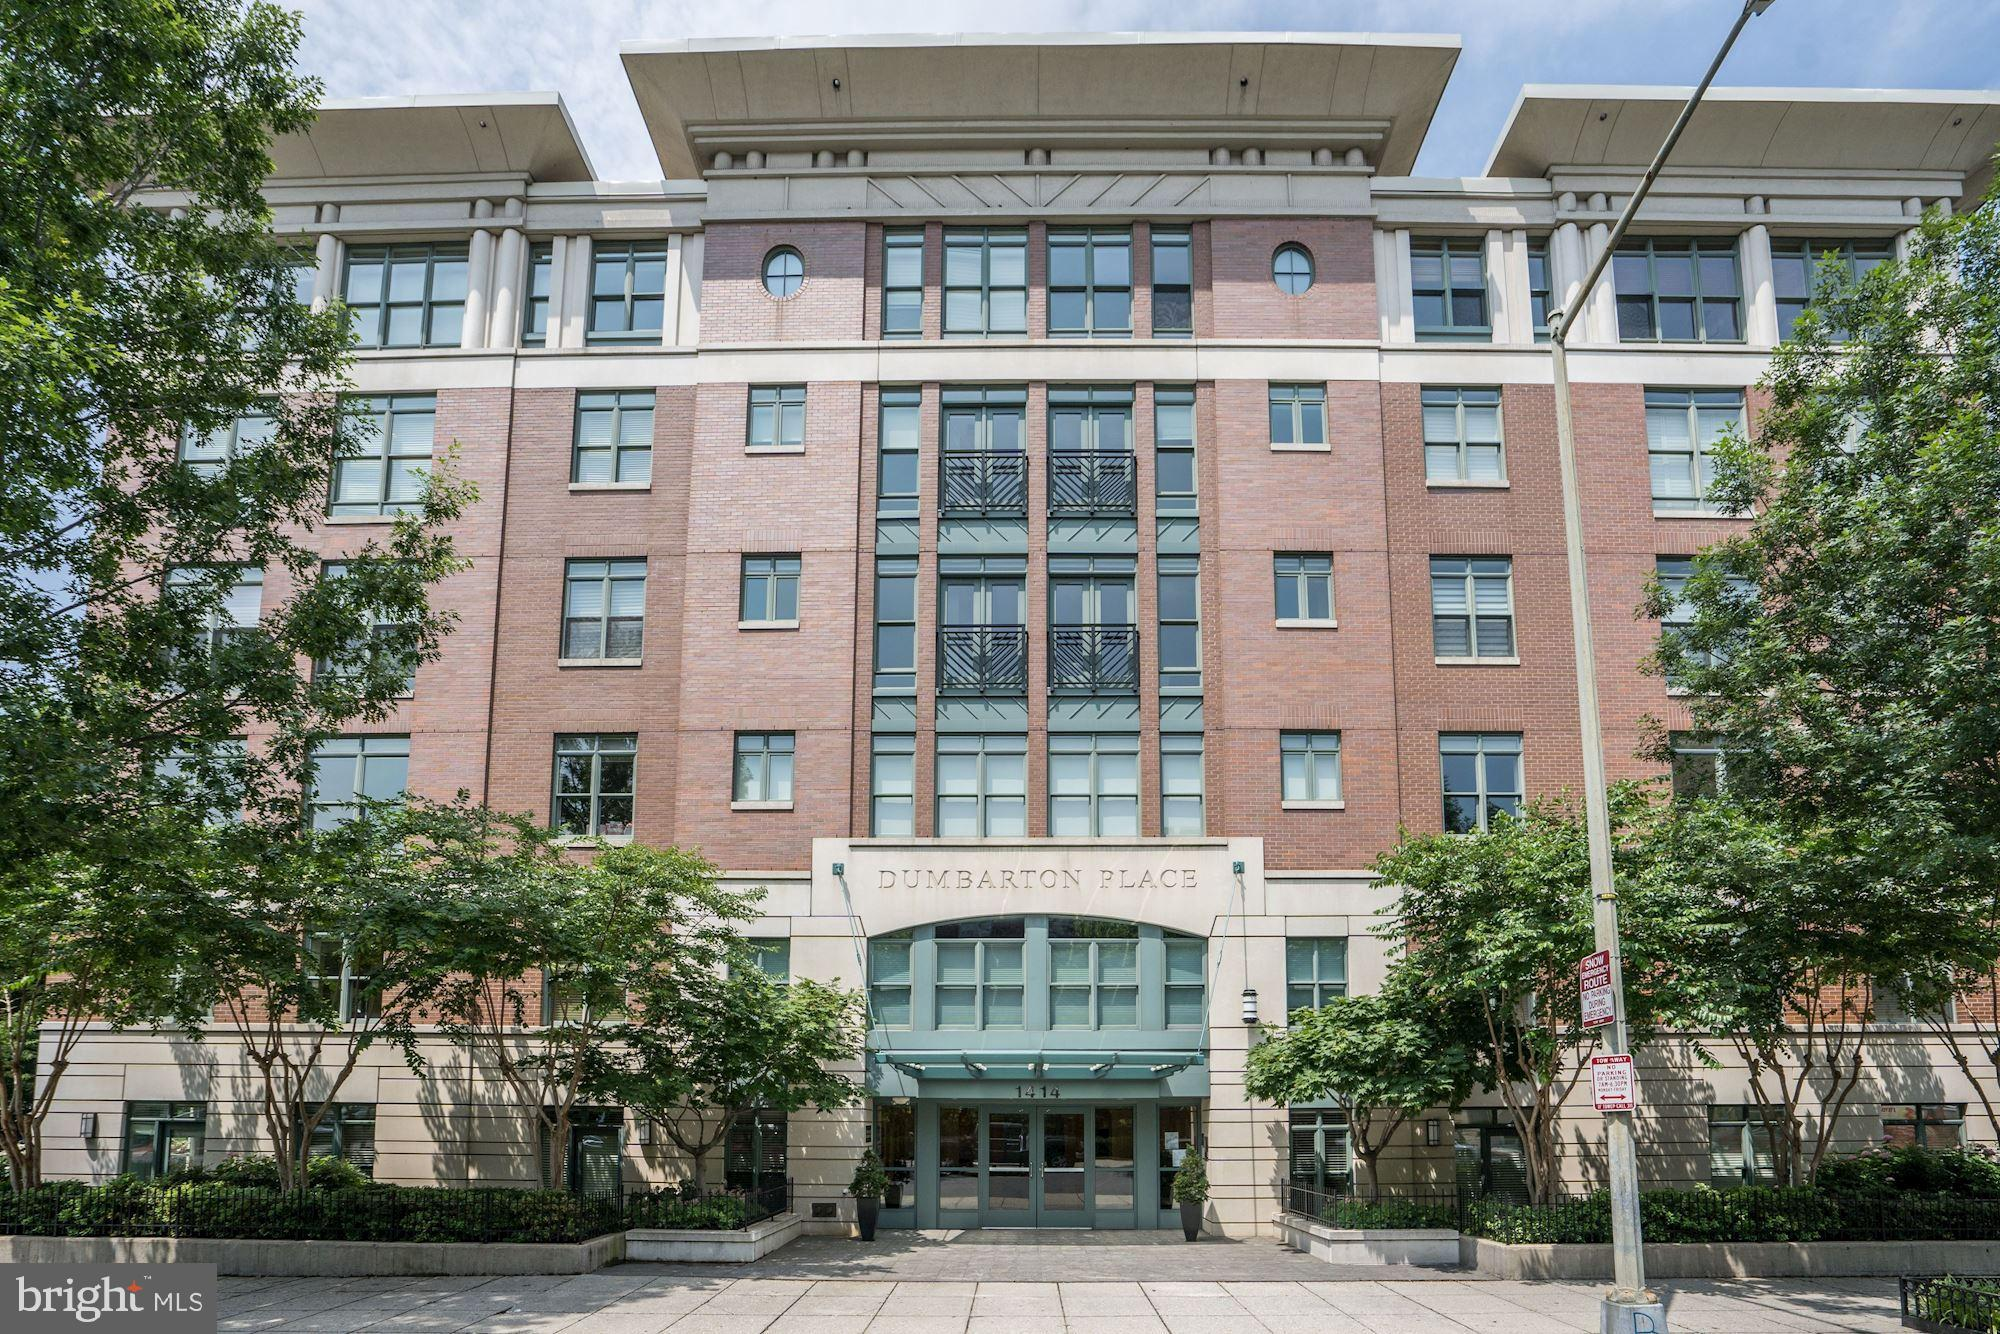 NEW LISTING! Dumbarton Place #42 offers turnkey living in an unparalleled location, with verdant gre